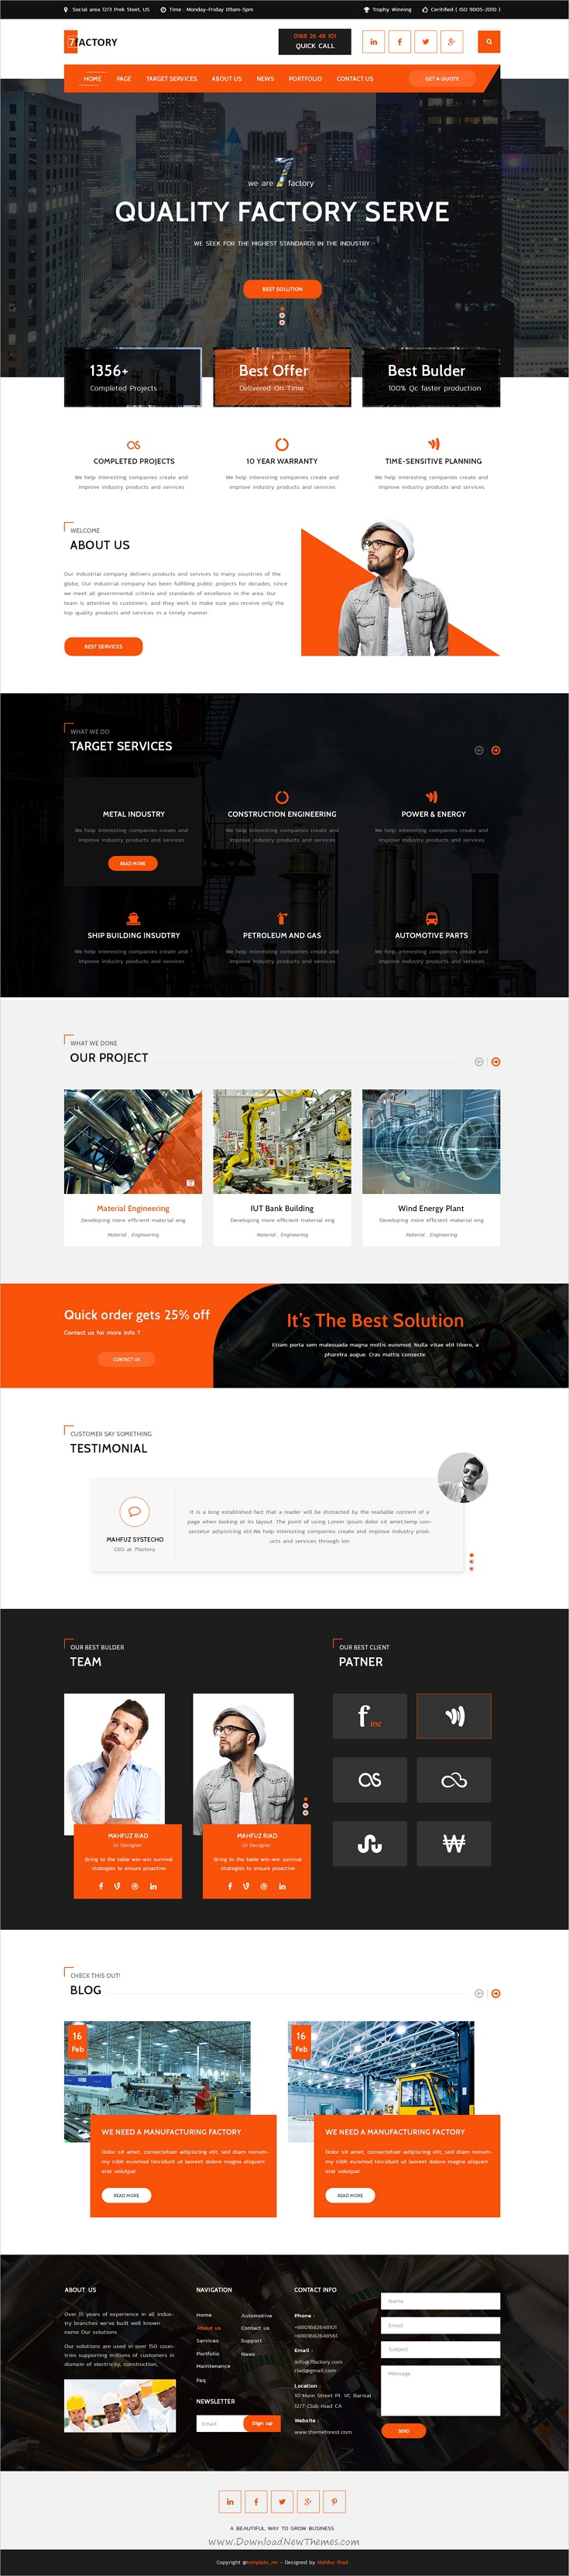 7factory Industrial Manufacturing Psd Template Web Layout Design Web Design Website Design Inspiration